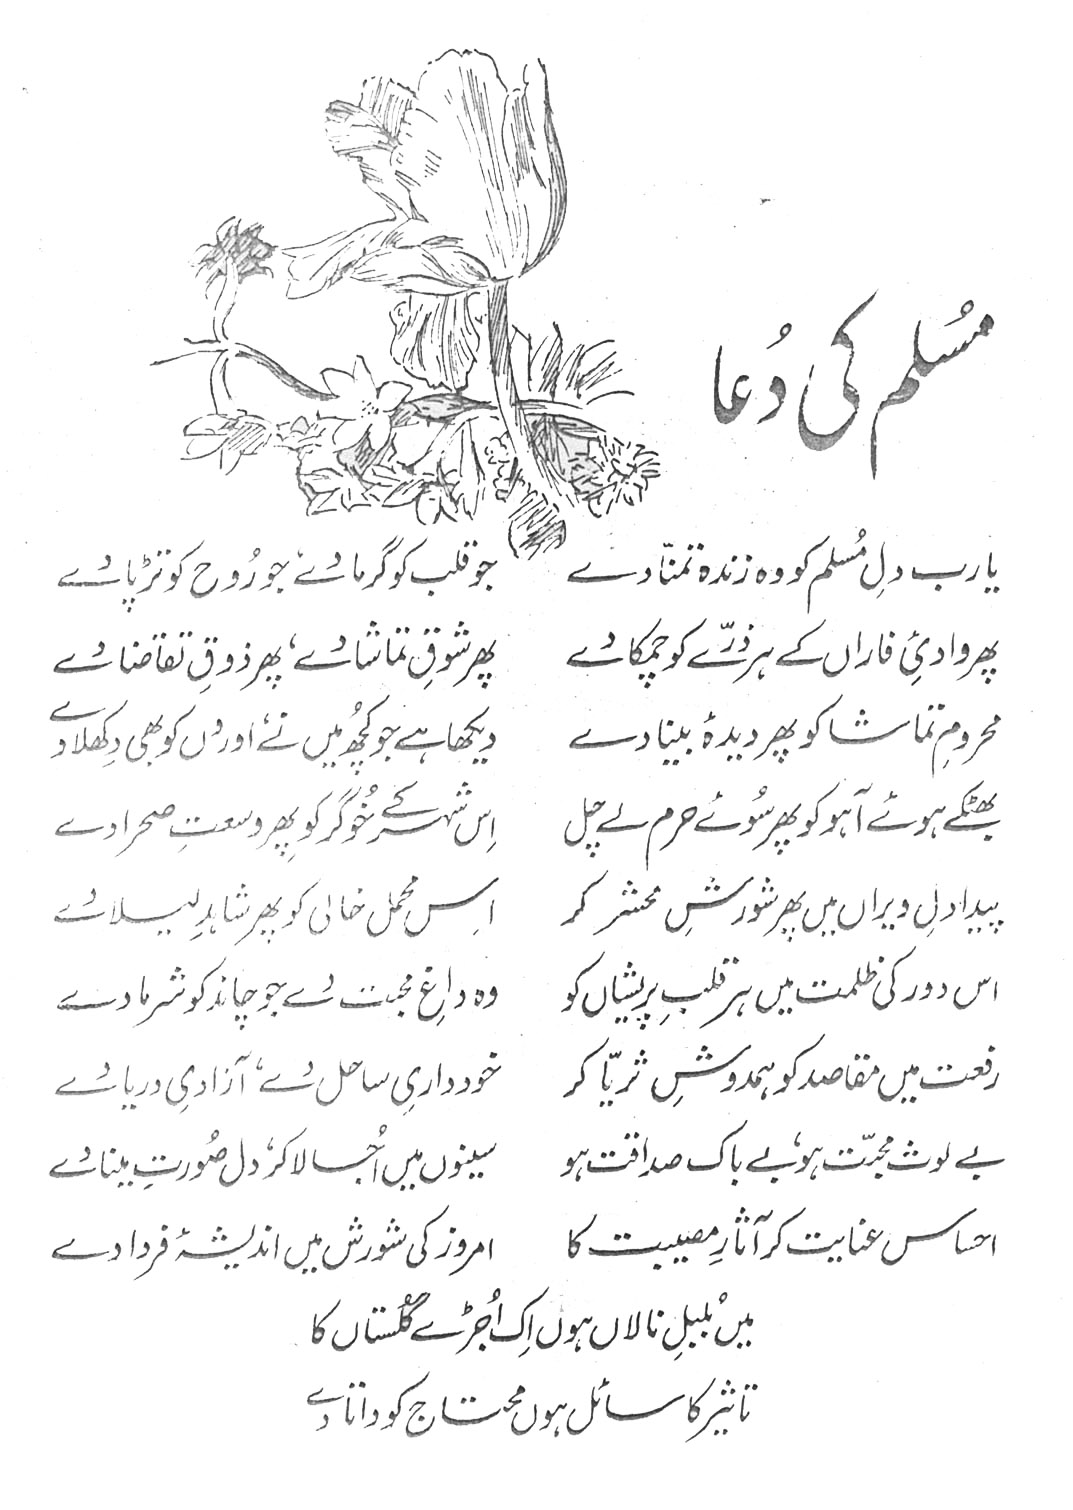 Narrative Essays Examples For High School As A Poet Iqbal Represented In Perhaps The Most Sensitive Manner The  Collective Consciousness Of His People During A Certain Period Of Their  History Yellow Wallpaper Analysis Essay also Science And Society Essay Iqbal As A Poet English Sample Essays